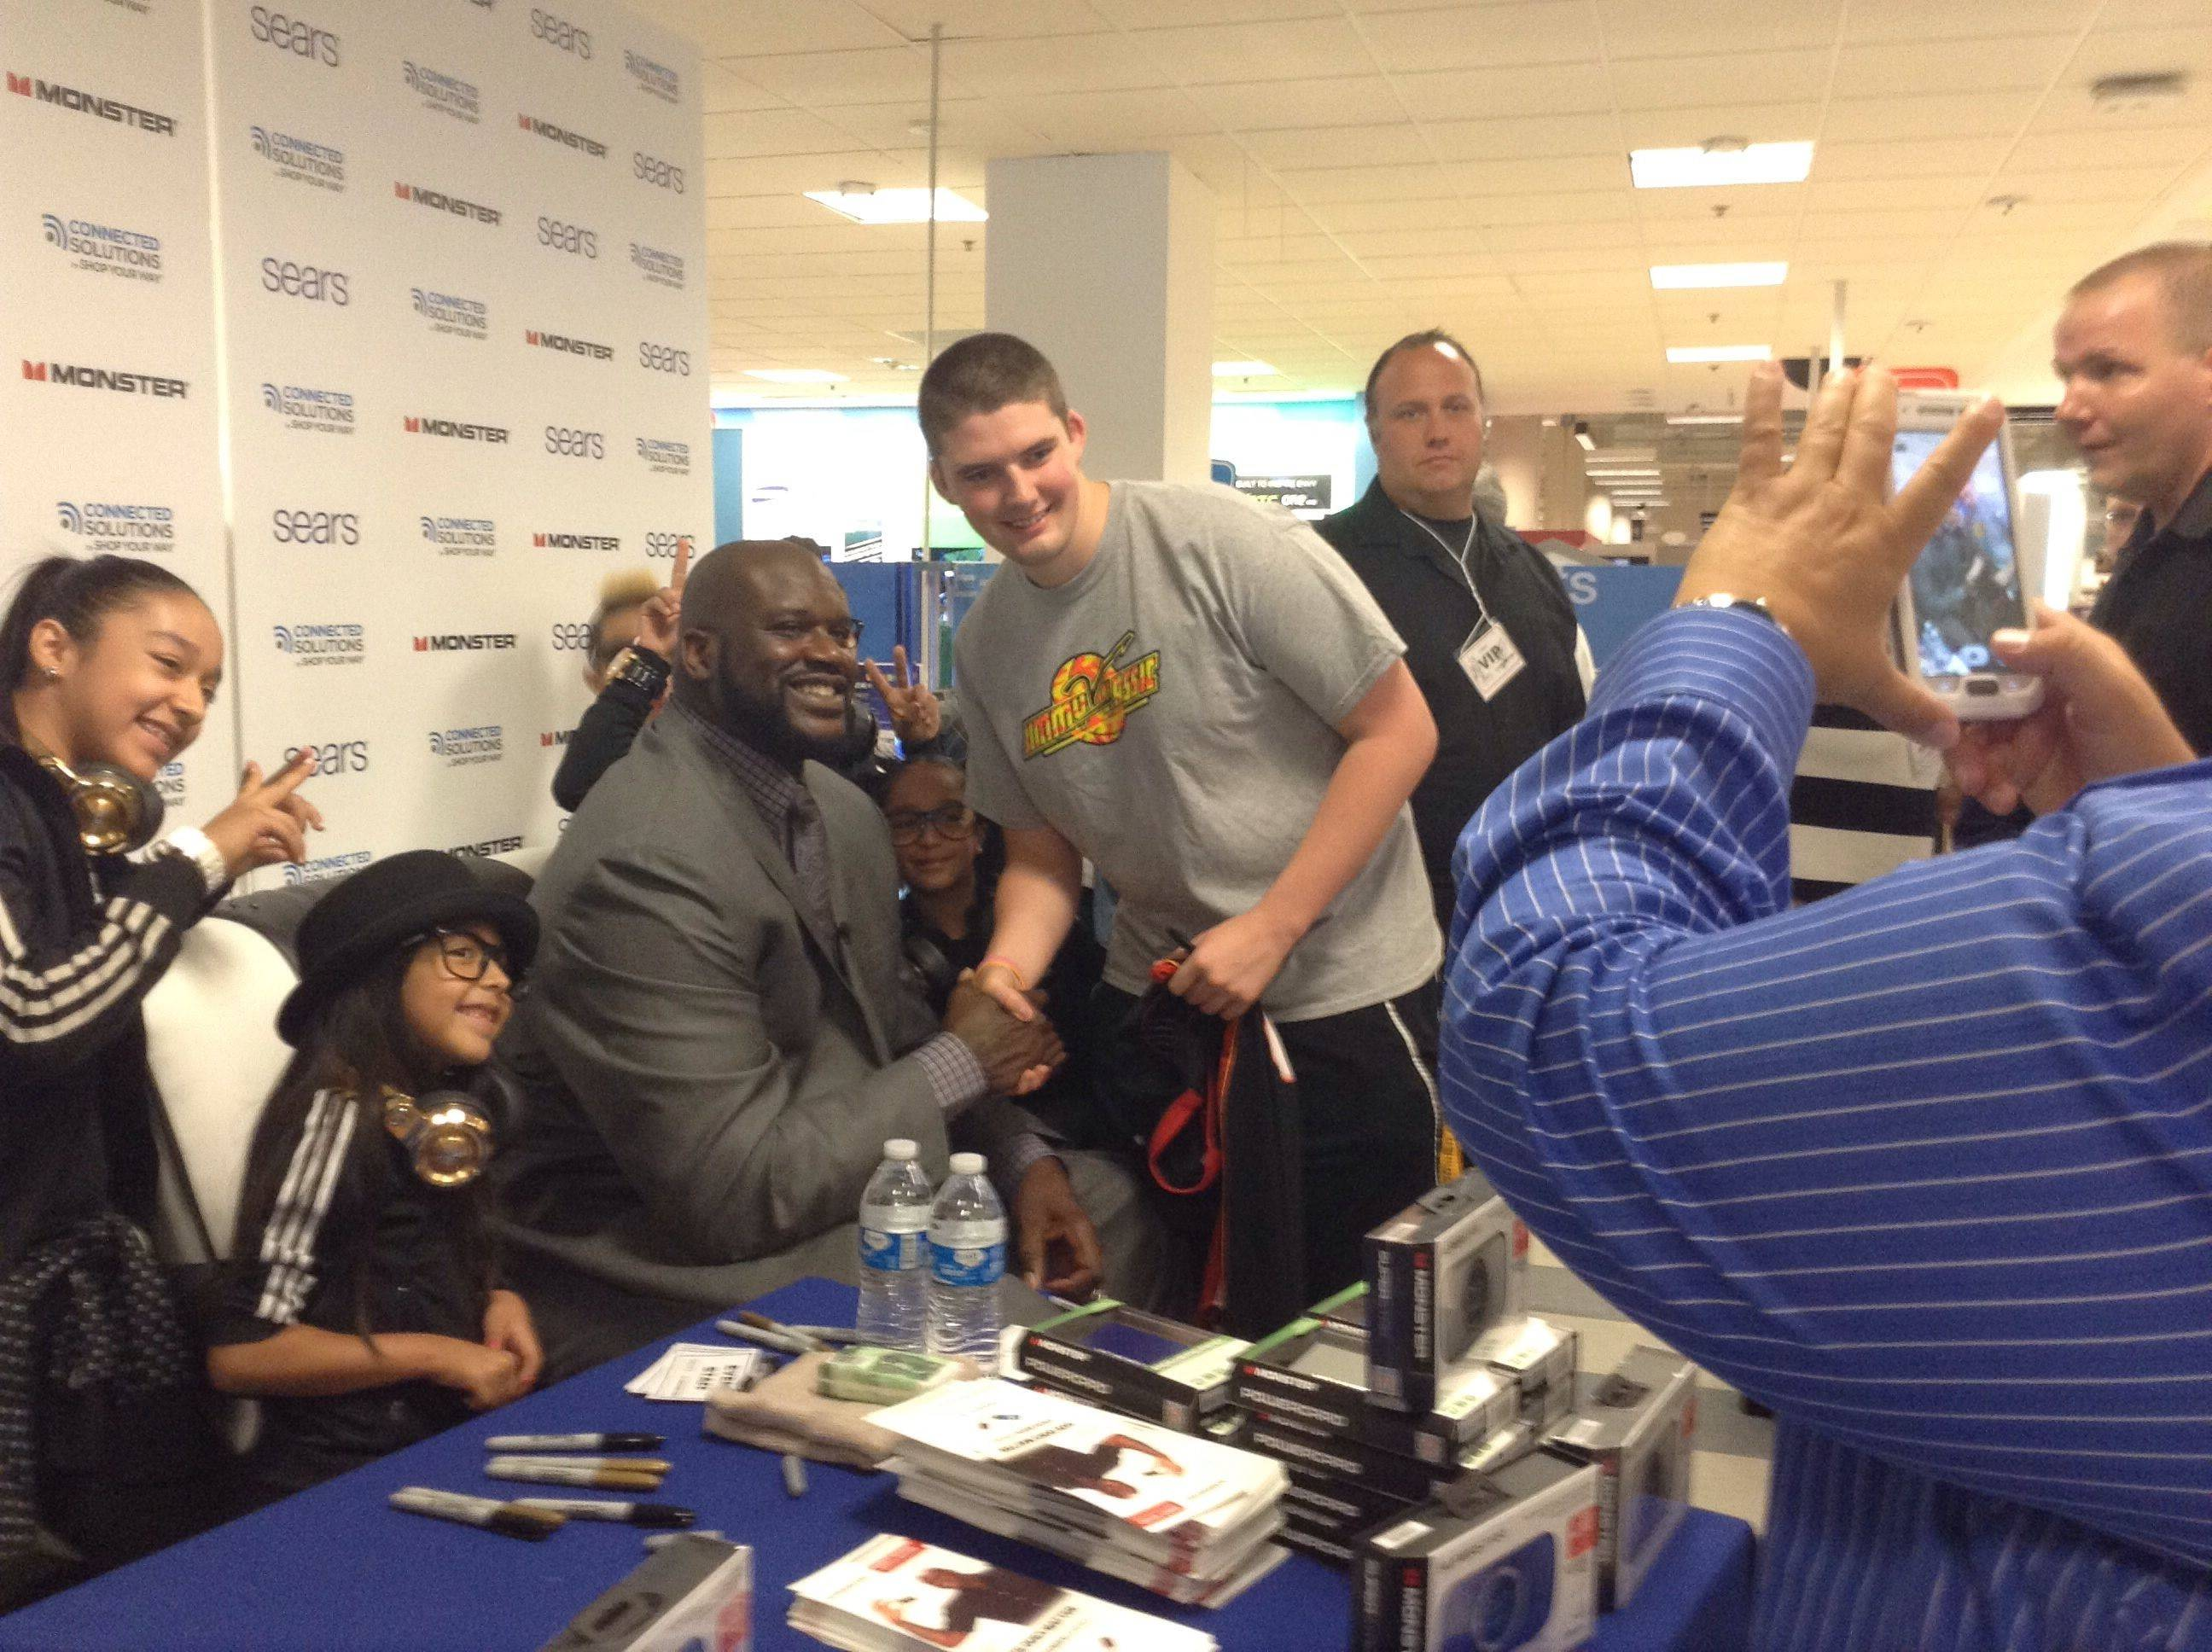 More than 200 fans waited to get an autograph and snap pictures Wednesday afternoon with former NBA star Shaquille O'Neal at the Sears store in Woodfield Mall.